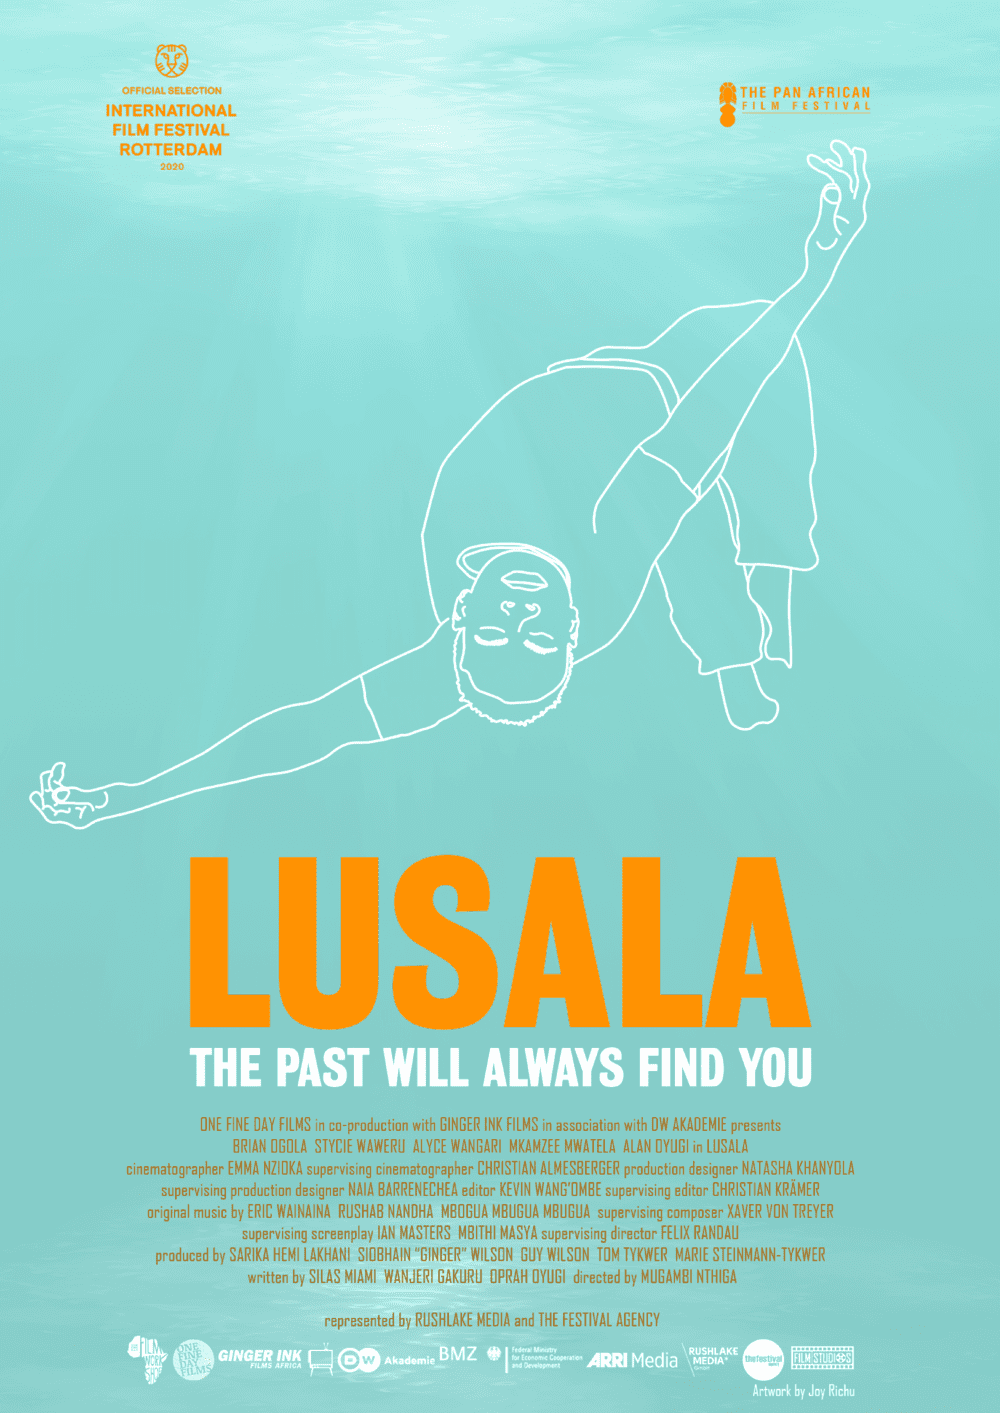 Final Lusala Poster IFFR_PanAfrican-1 (1)